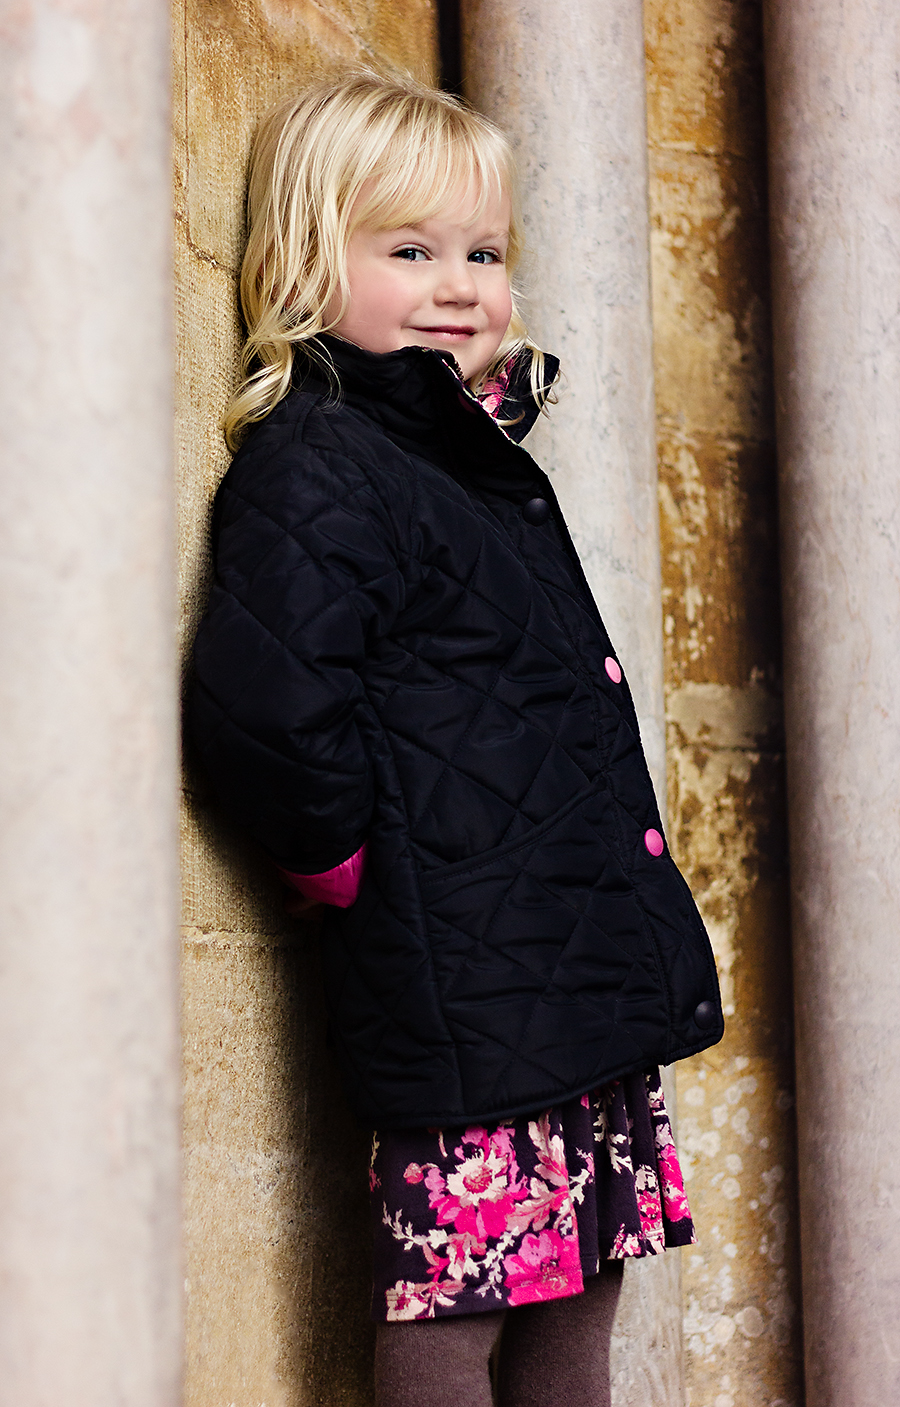 Blonde girl leaning against Salisbury Cathedral wall, looking over at the camera